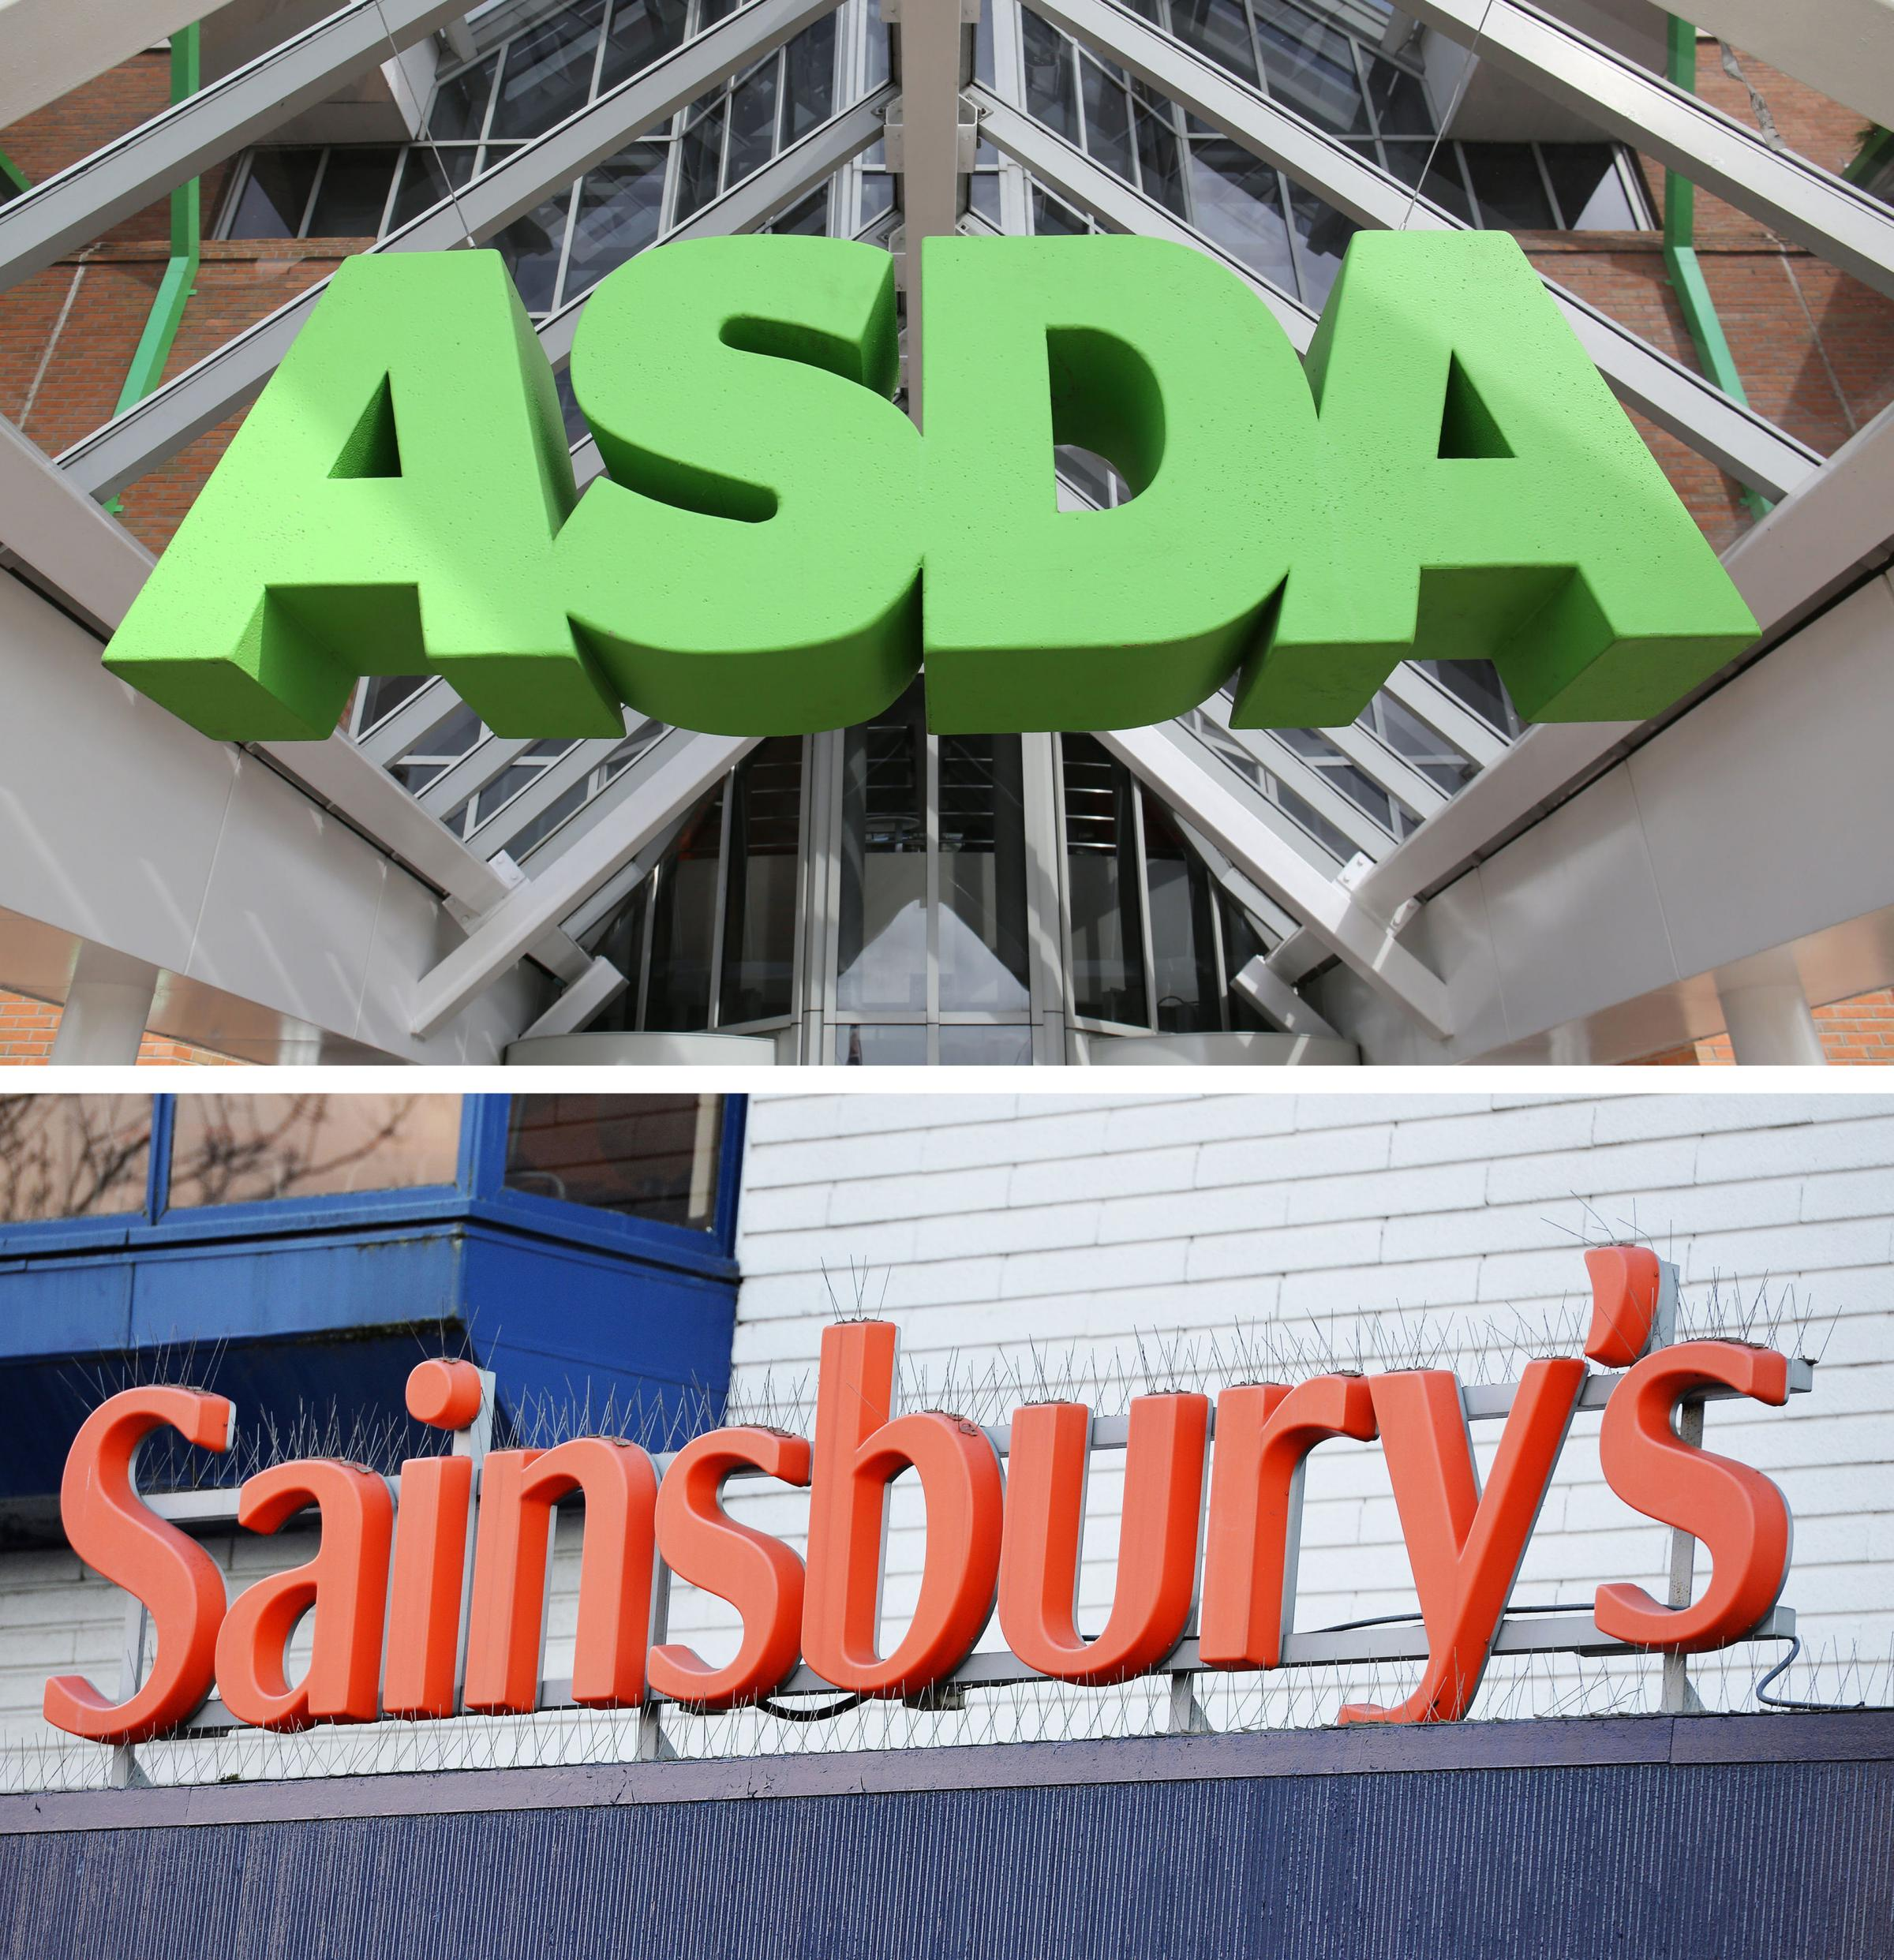 Undated file photos of an ASDA and a Sainsbury's sign. Sainsbury's has claimed there are serious flaws with the competition watchdog's report into its £12 billion merger with Asda, and argued the tie-up will deliver £